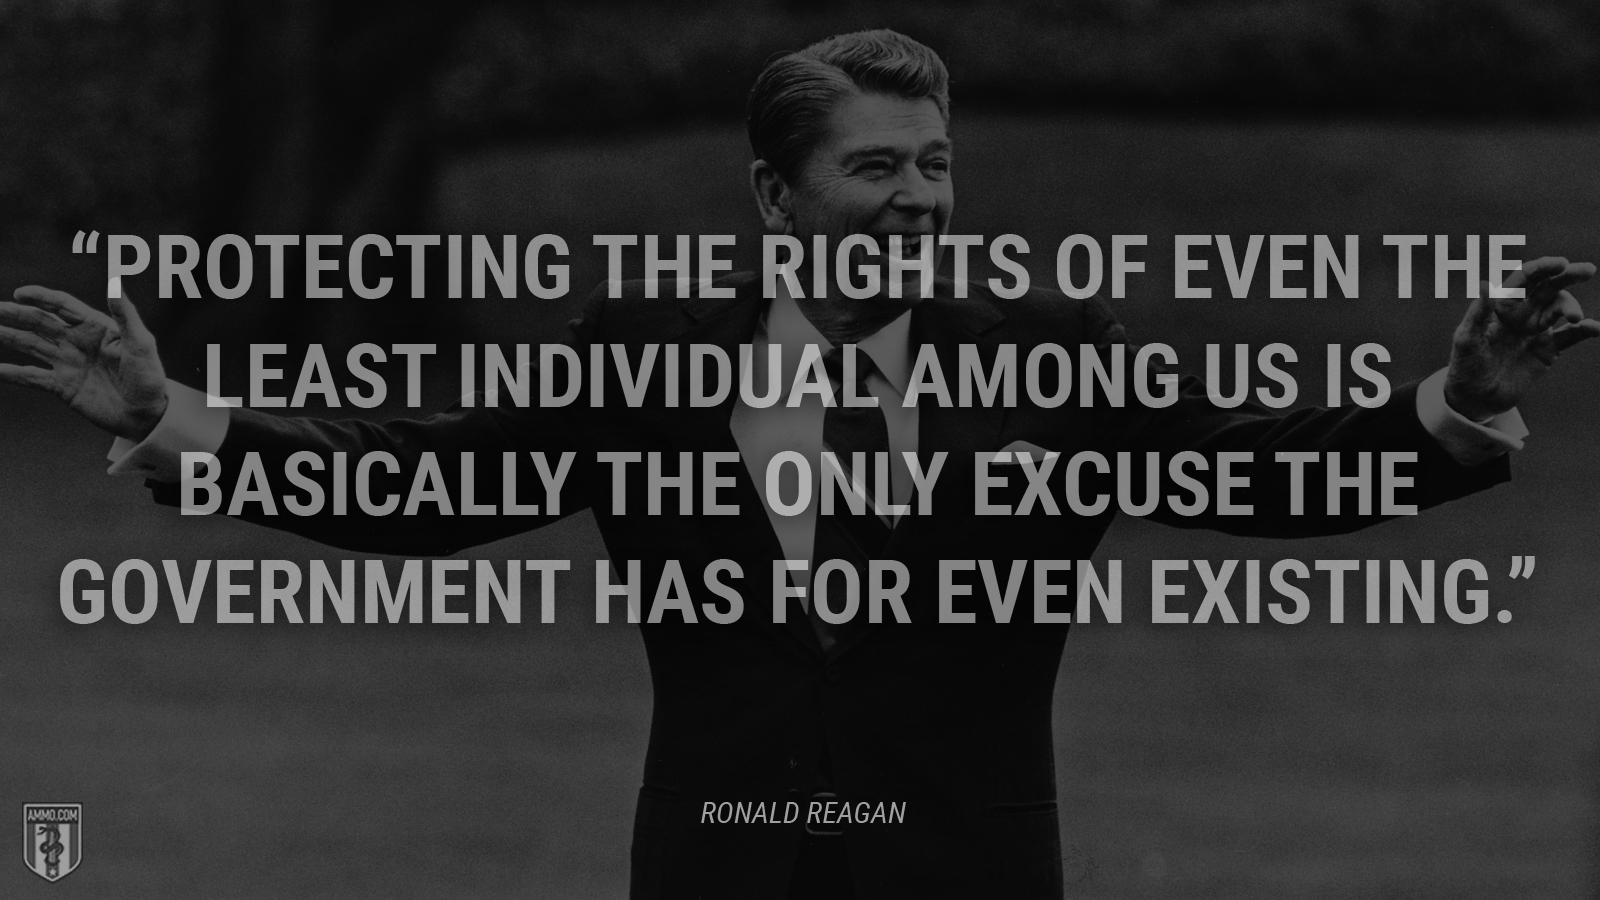 """Protecting the rights of even the least individual among us is basically the only excuse the government has for even existing."" - Ronald Reagan"